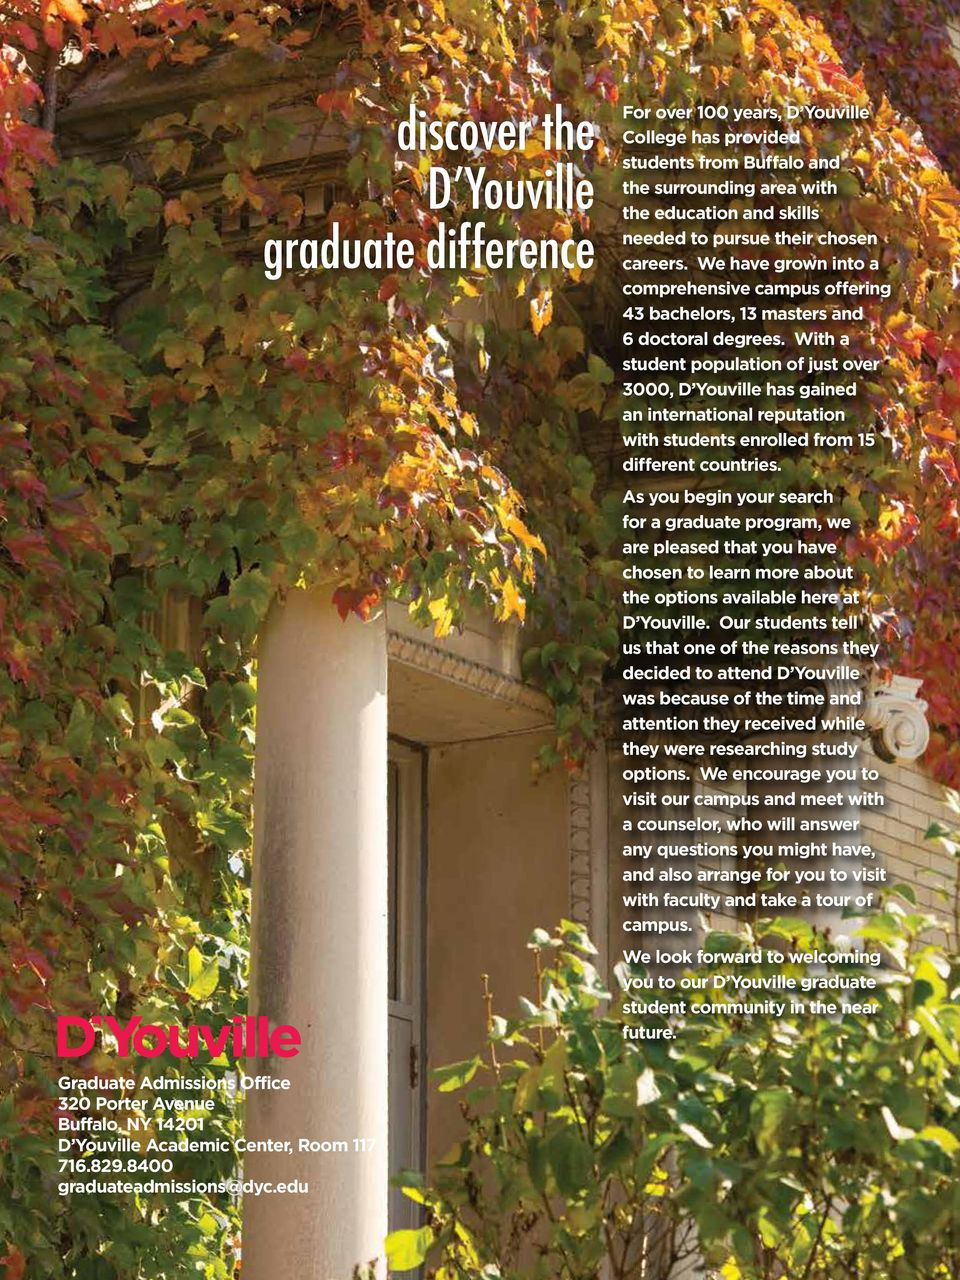 With a student population of just over 3000, D Youville has gained an international reputation with students enrolled from 15 different countries.